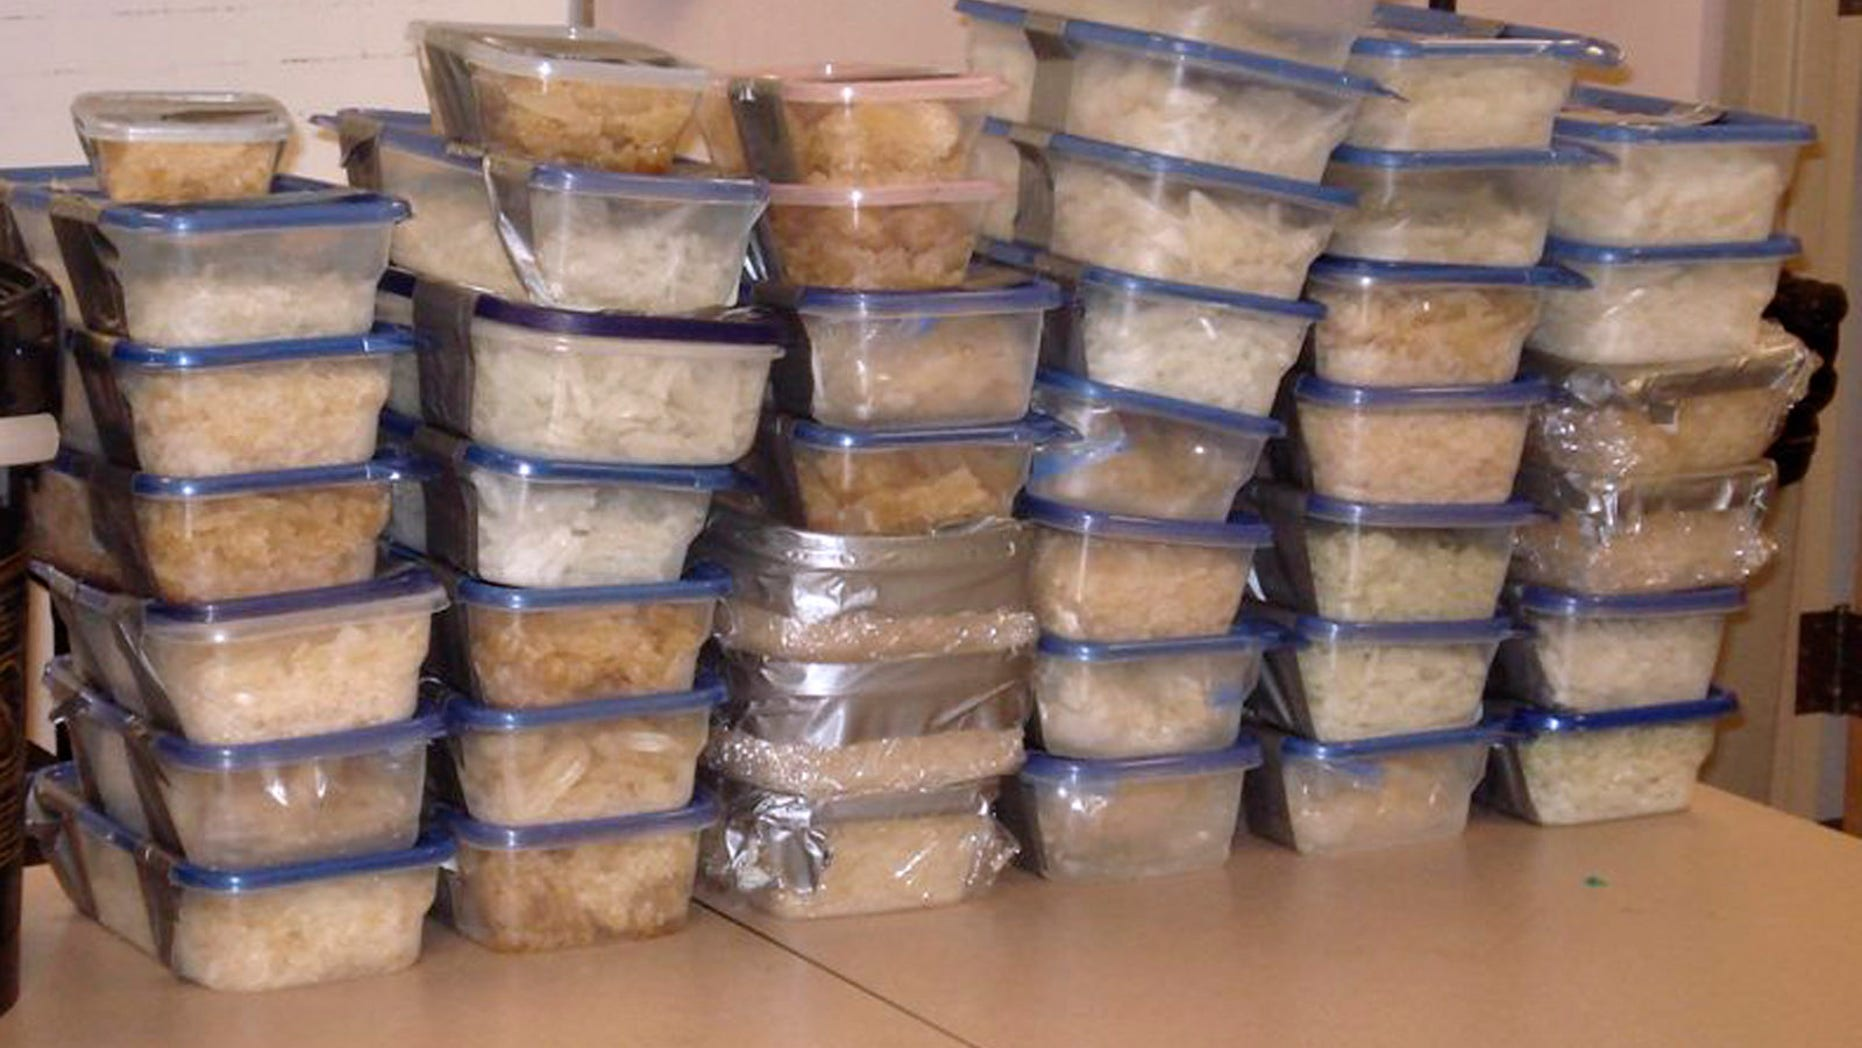 Some of the more than 900 pounds of methamphetamine seized by Gwinnett County, Ga., police is seen in an undated photo provided by the Gwinnett County, Ga., Police Department. Police say they raided a house in Norcross, Ga., Nov. 29 after being told a large amount of meth was being produced there.